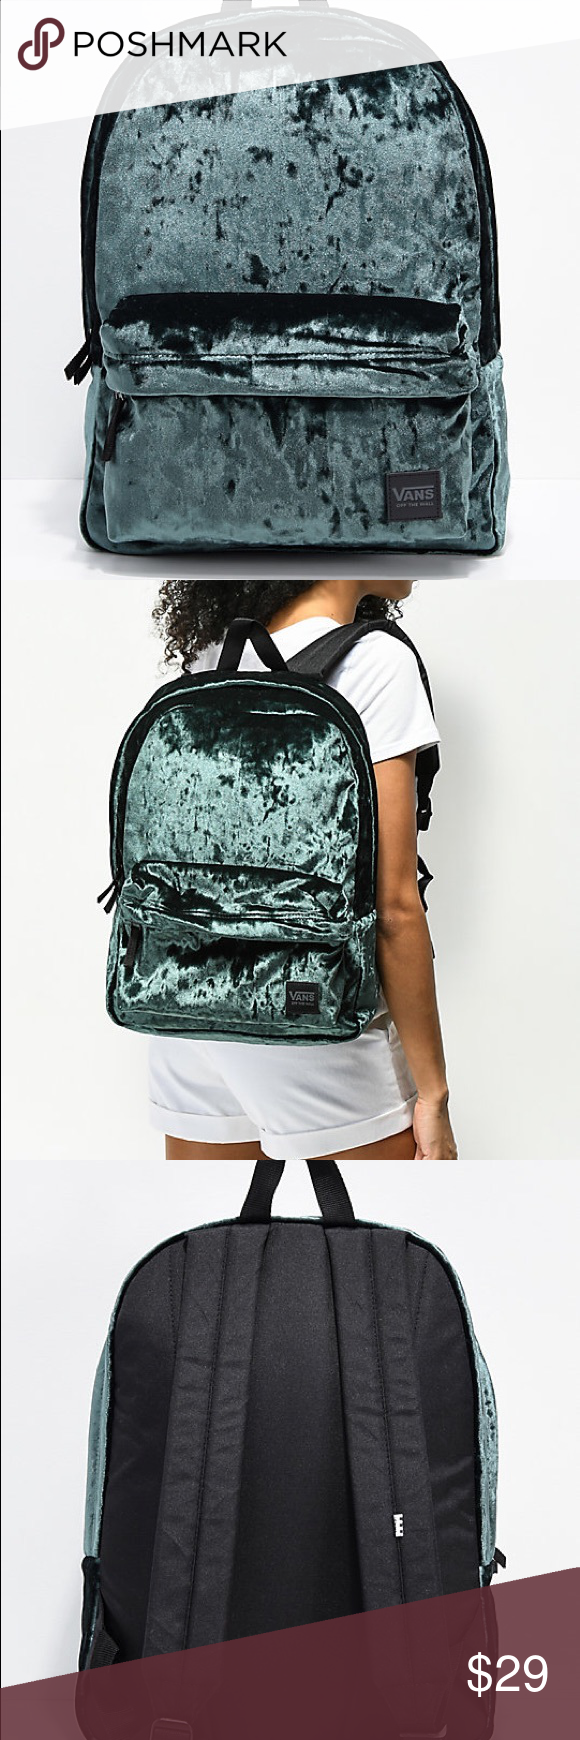 42922e8e9563 Vans Deanna III Velvet 22L Backpack 🎉 Deana III Darkest Spruce Velvet 22L  Backpack from